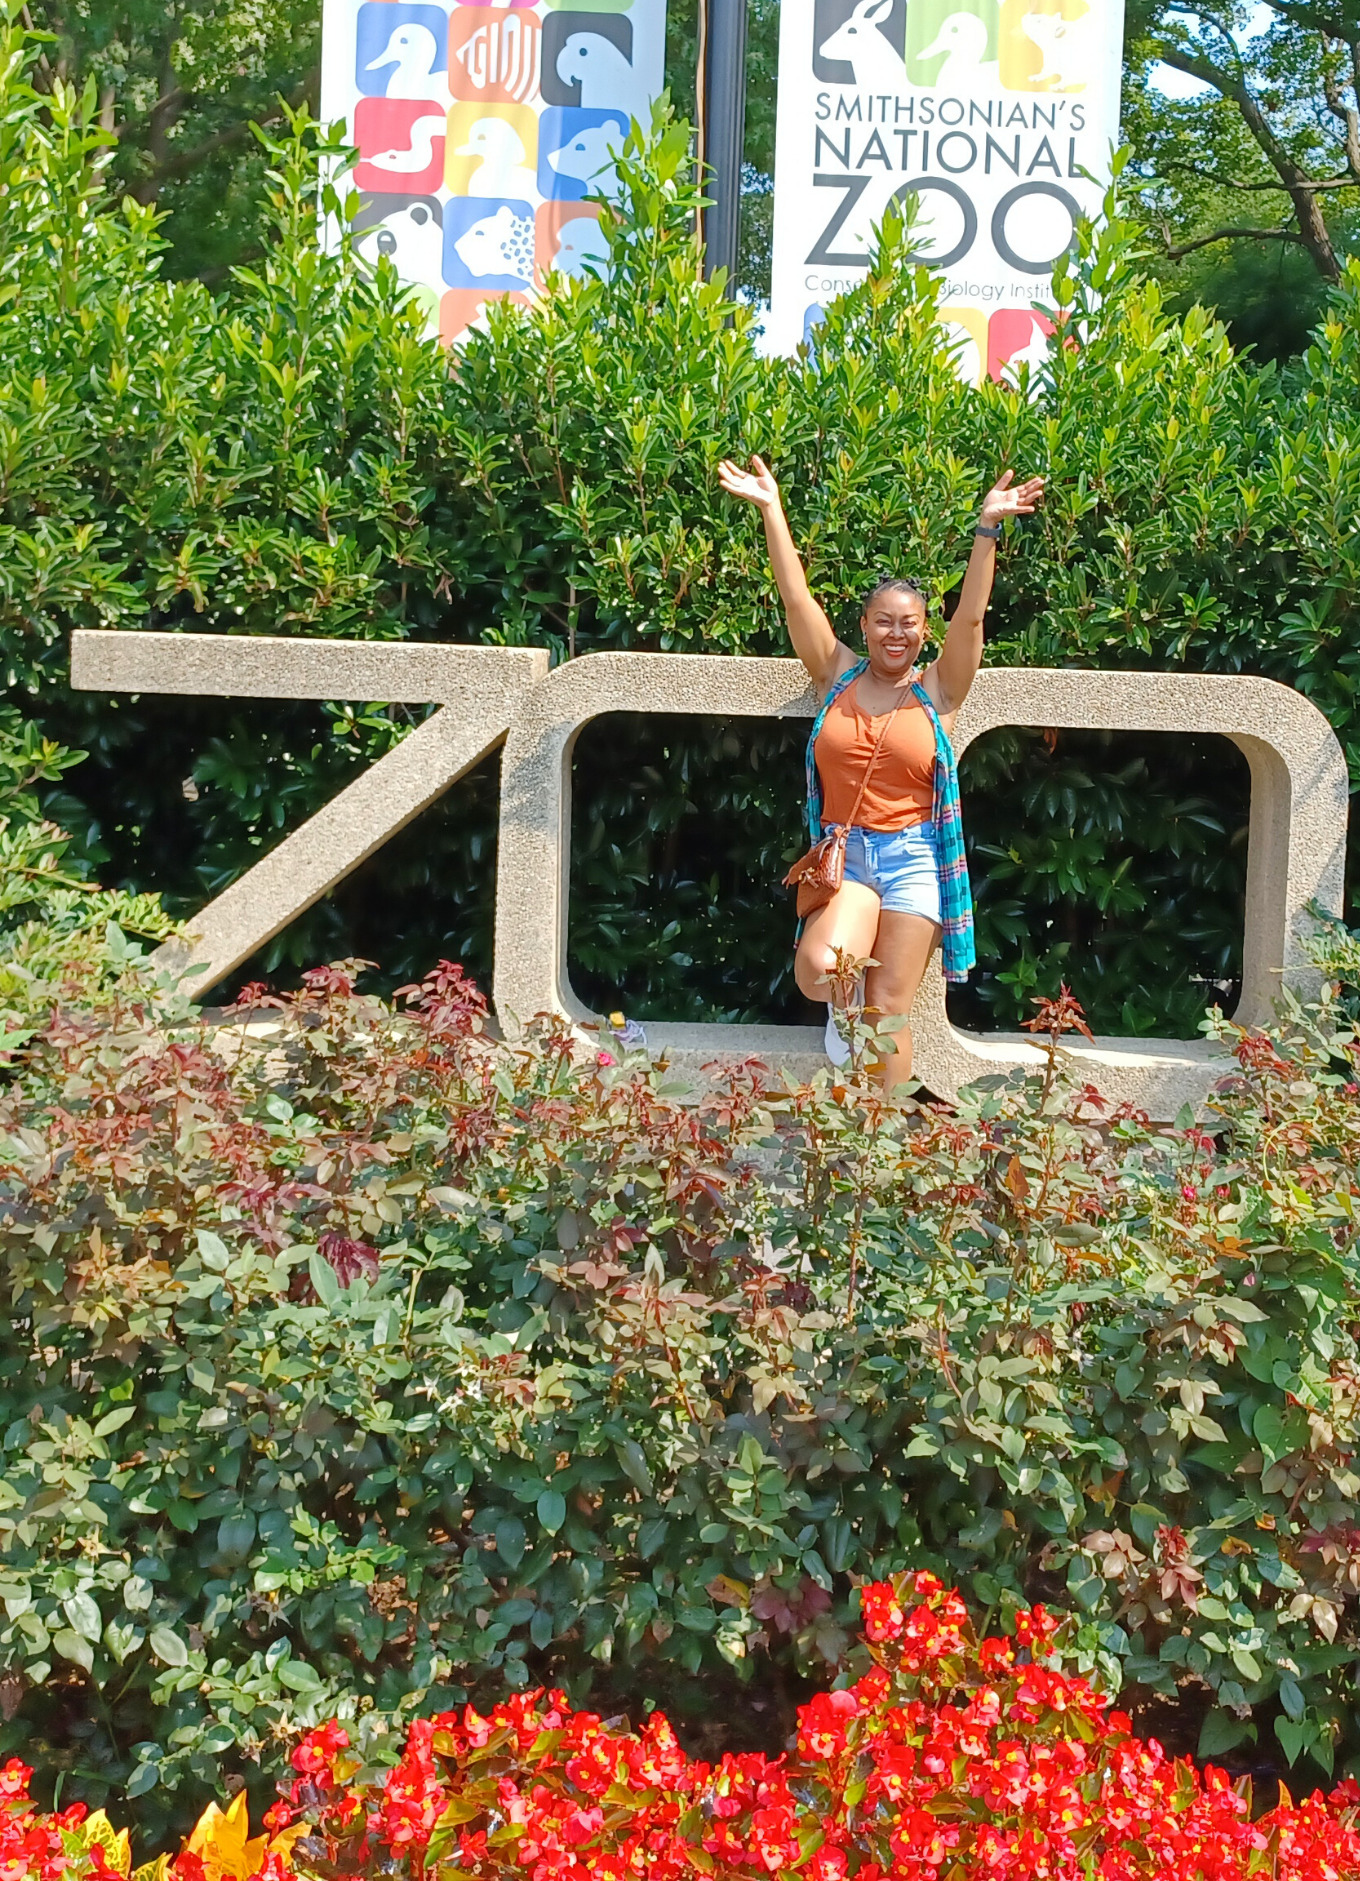 This Bahamian Gyal blogger, Rogan Smith smiles in front of the Smithsonian National Zoo in Washington DC